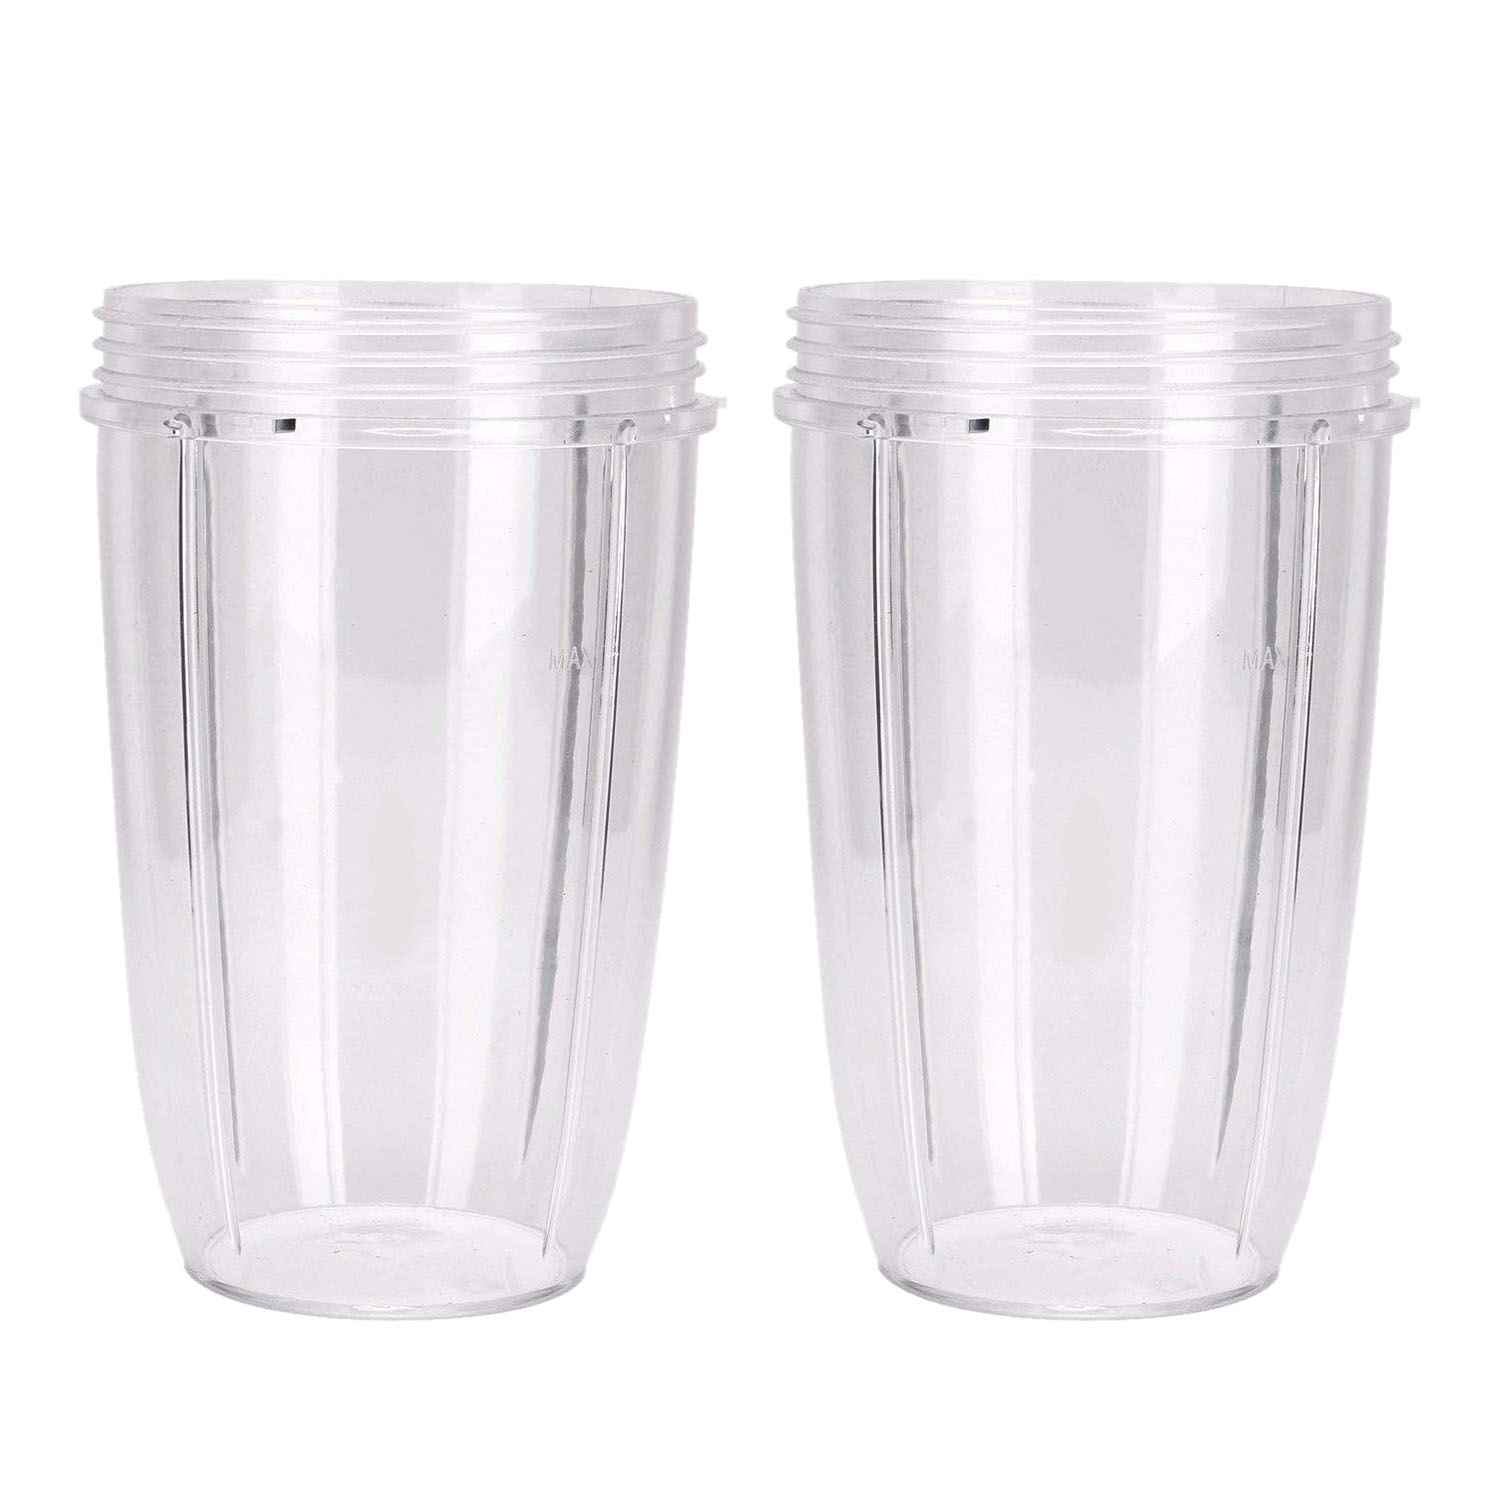 2PCS Juicer Cup Mug Clear Replacement For NutriBullet Nutri Bullet Juicer2PCS Juicer Cup Mug Clear Replacement For NutriBullet Nutri Bullet Juicer